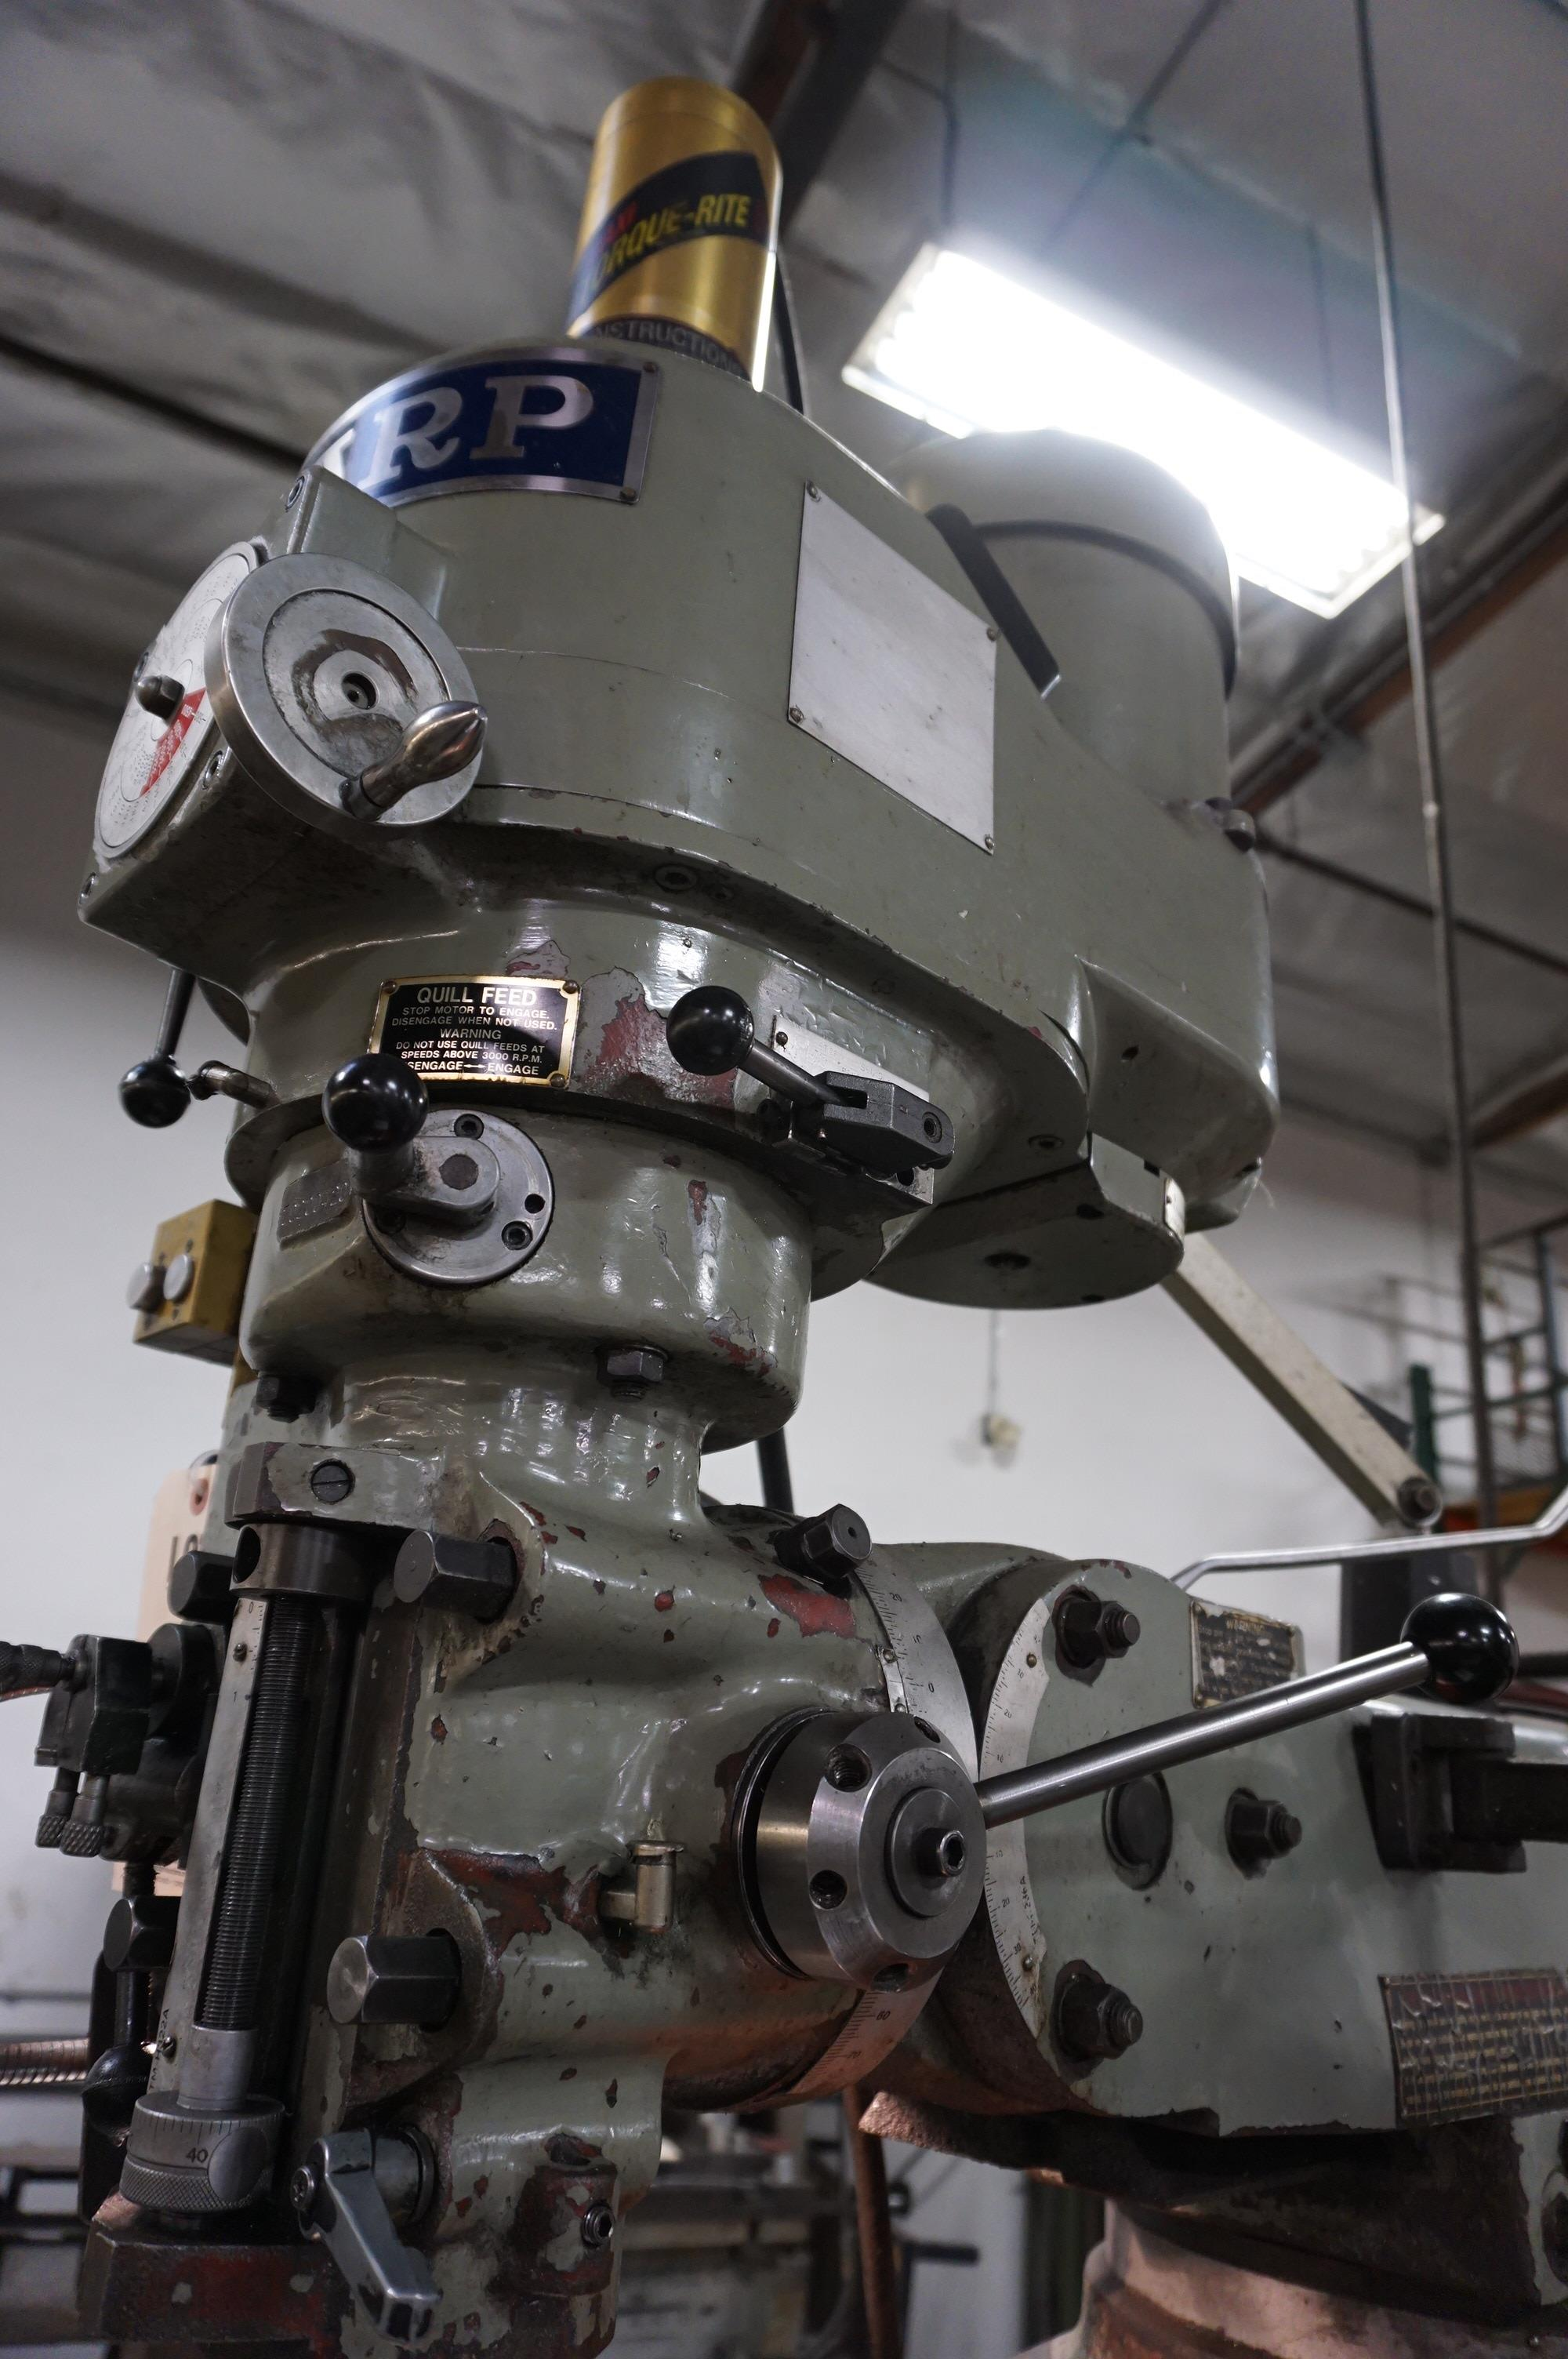 """SHARP VERTICAL MILLING MACHINE, 10"""" x 50"""" Table, S/N 70200420, with Newall Topaz DRO, with Manual - Image 4 of 7"""